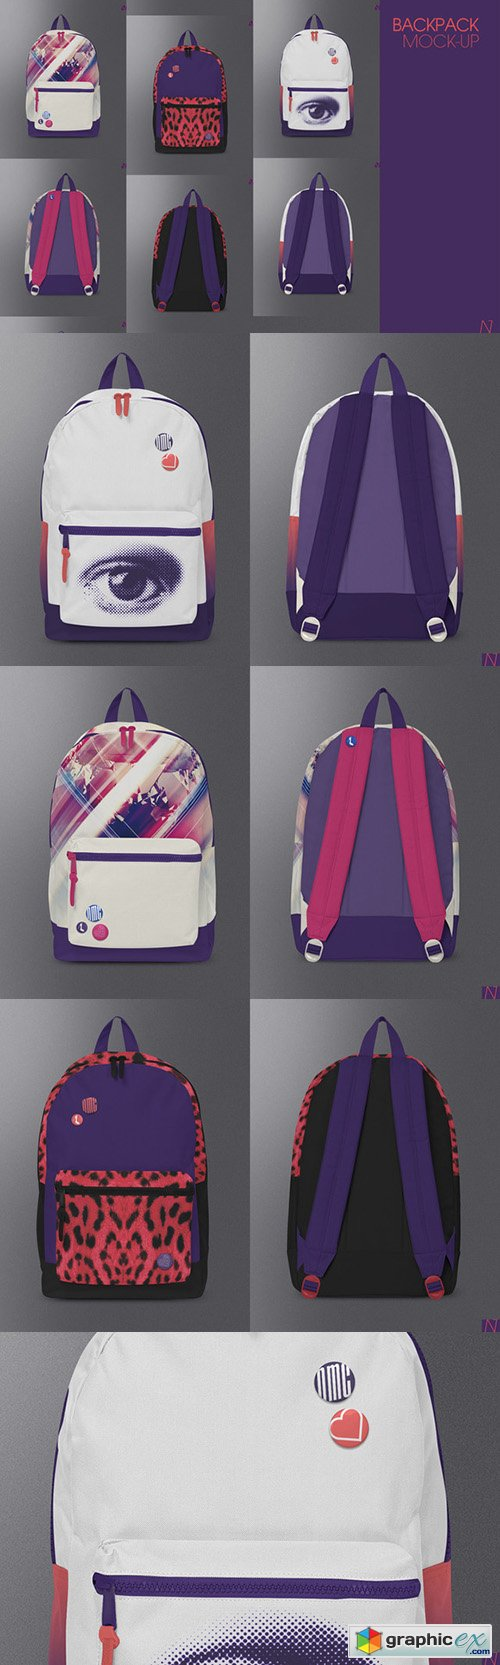 Backpack Mock-up